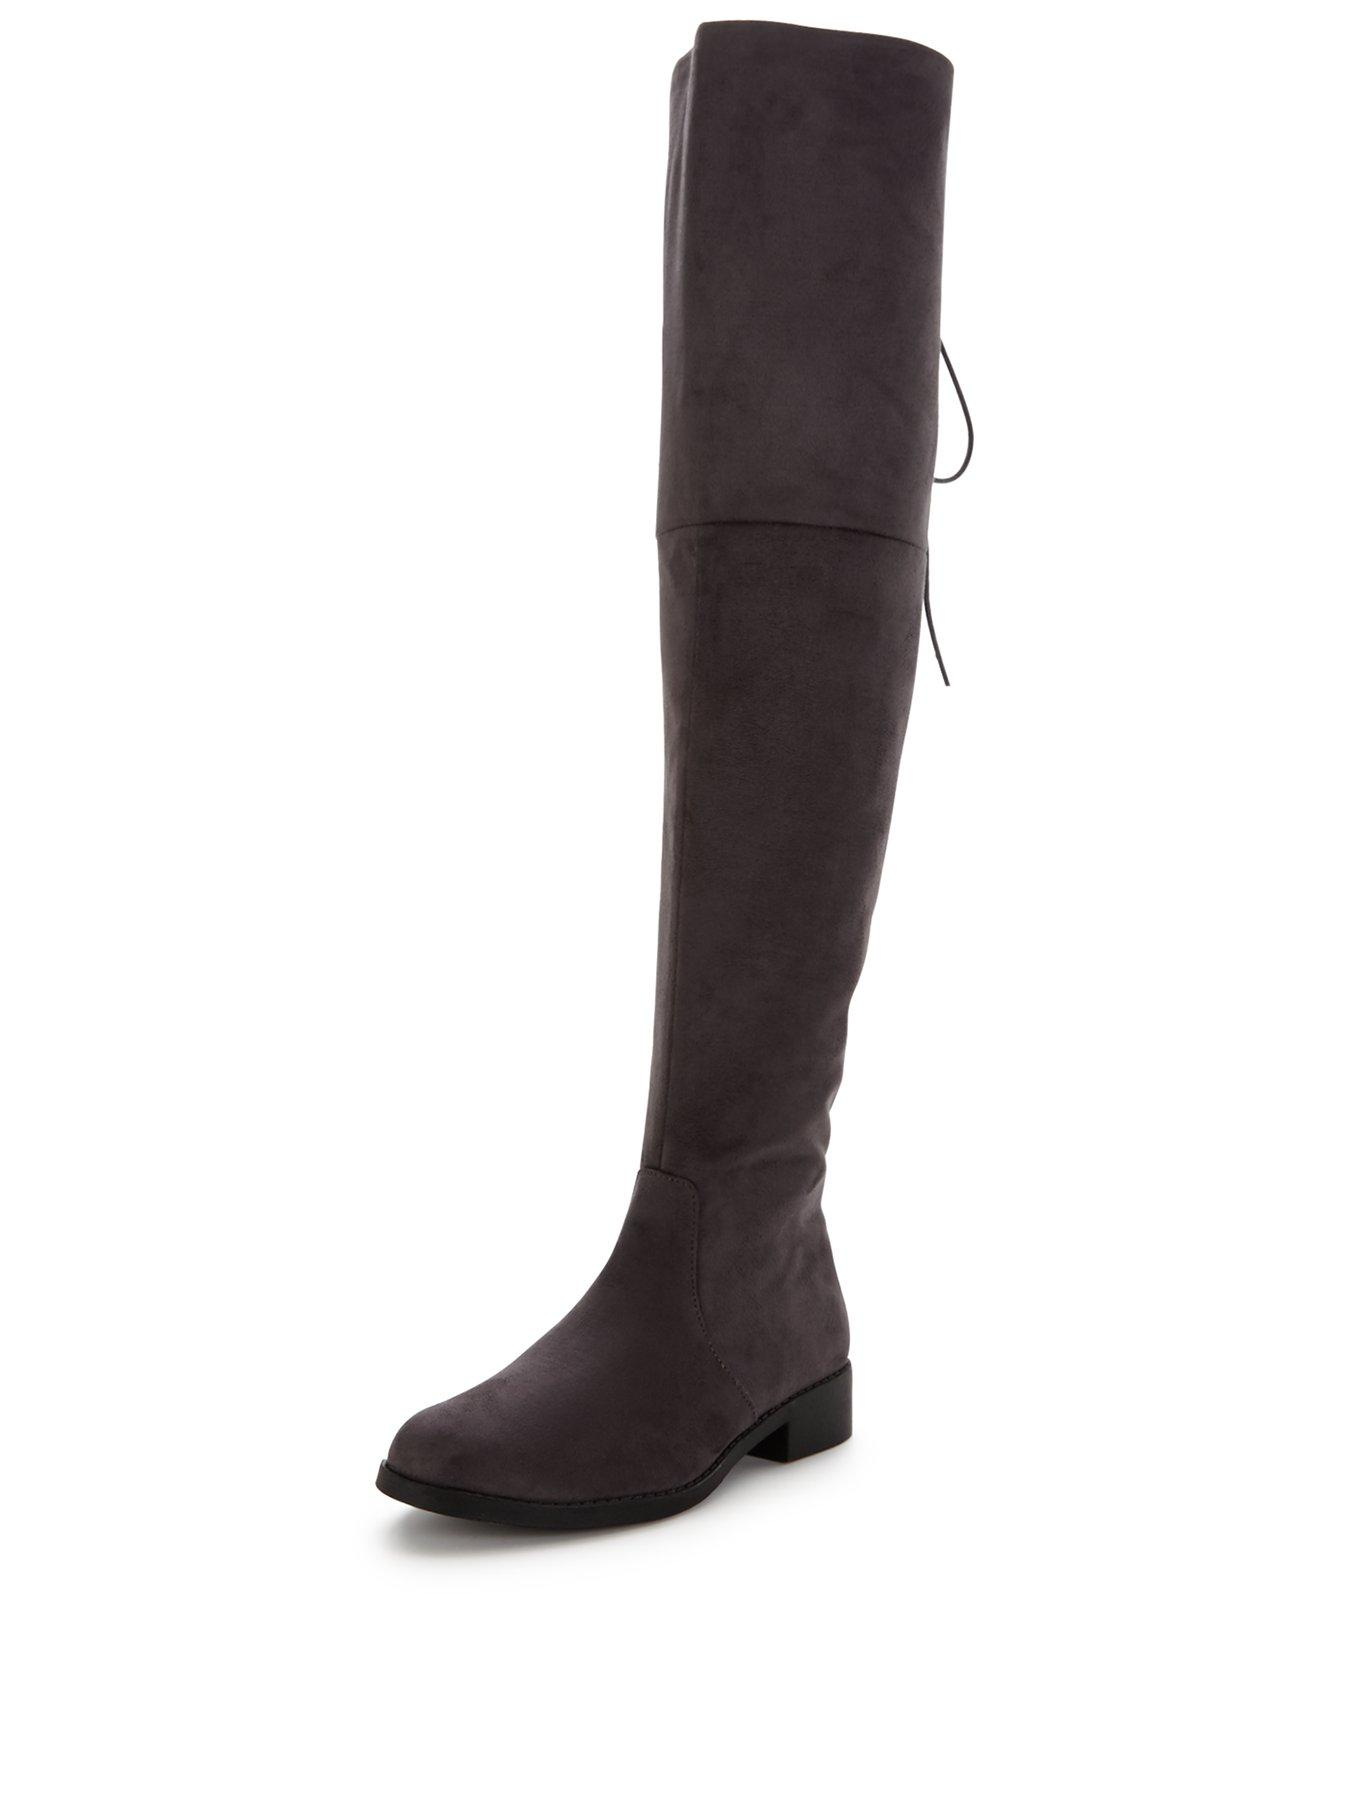 V by Very Lacey Tie Back Over The Knee Boot Grey 1600166279 Women's Shoes V by Very Boots